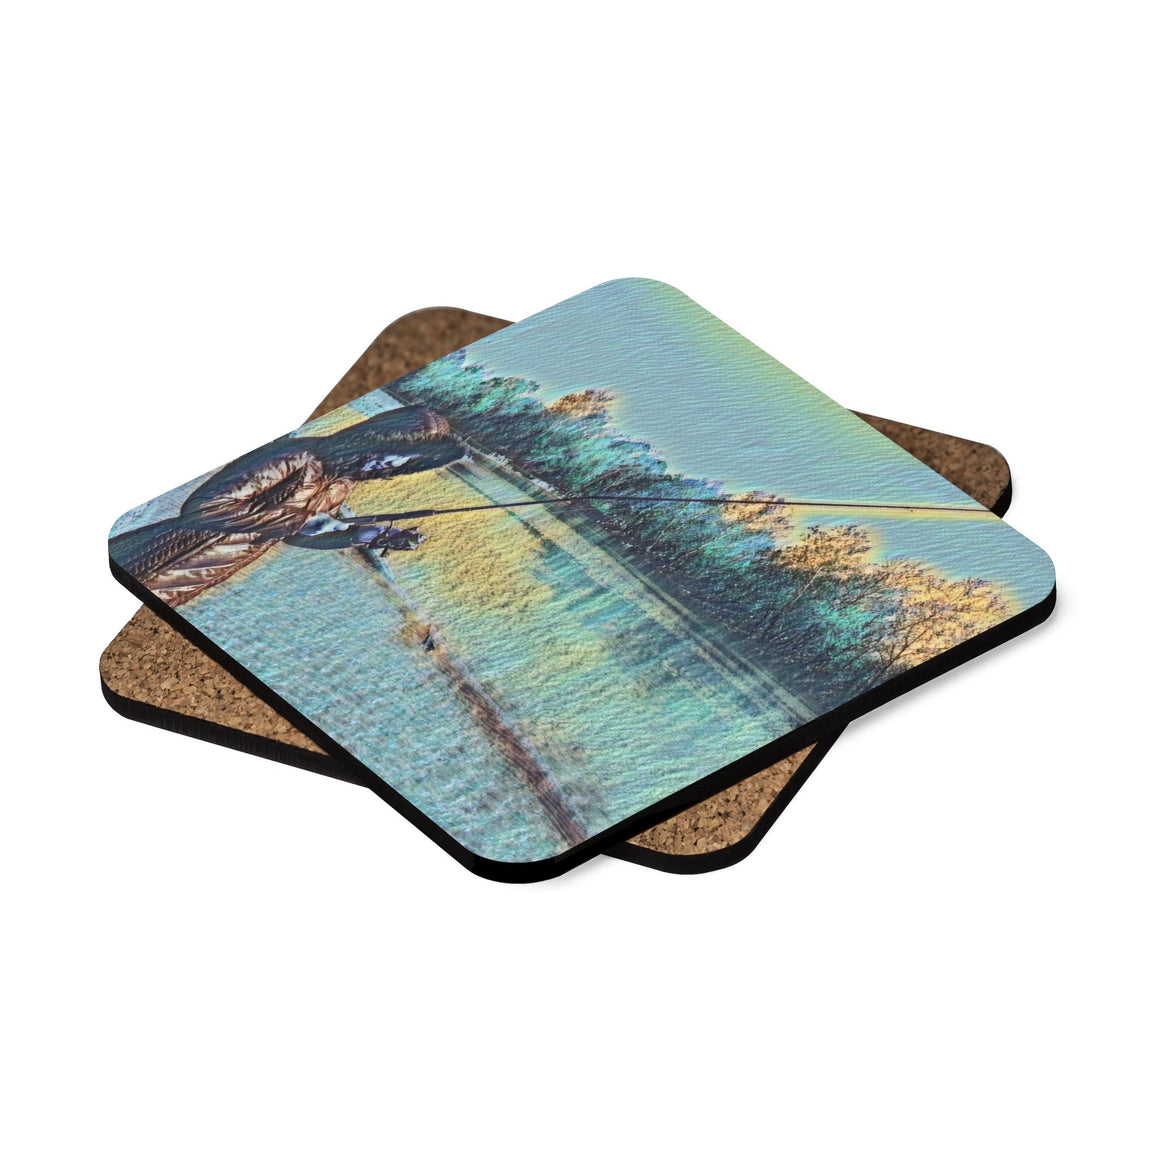 Levi Thang Fishing Design 16 Square Hardboard Coaster Set - 4pcs - I Am A Dreamer